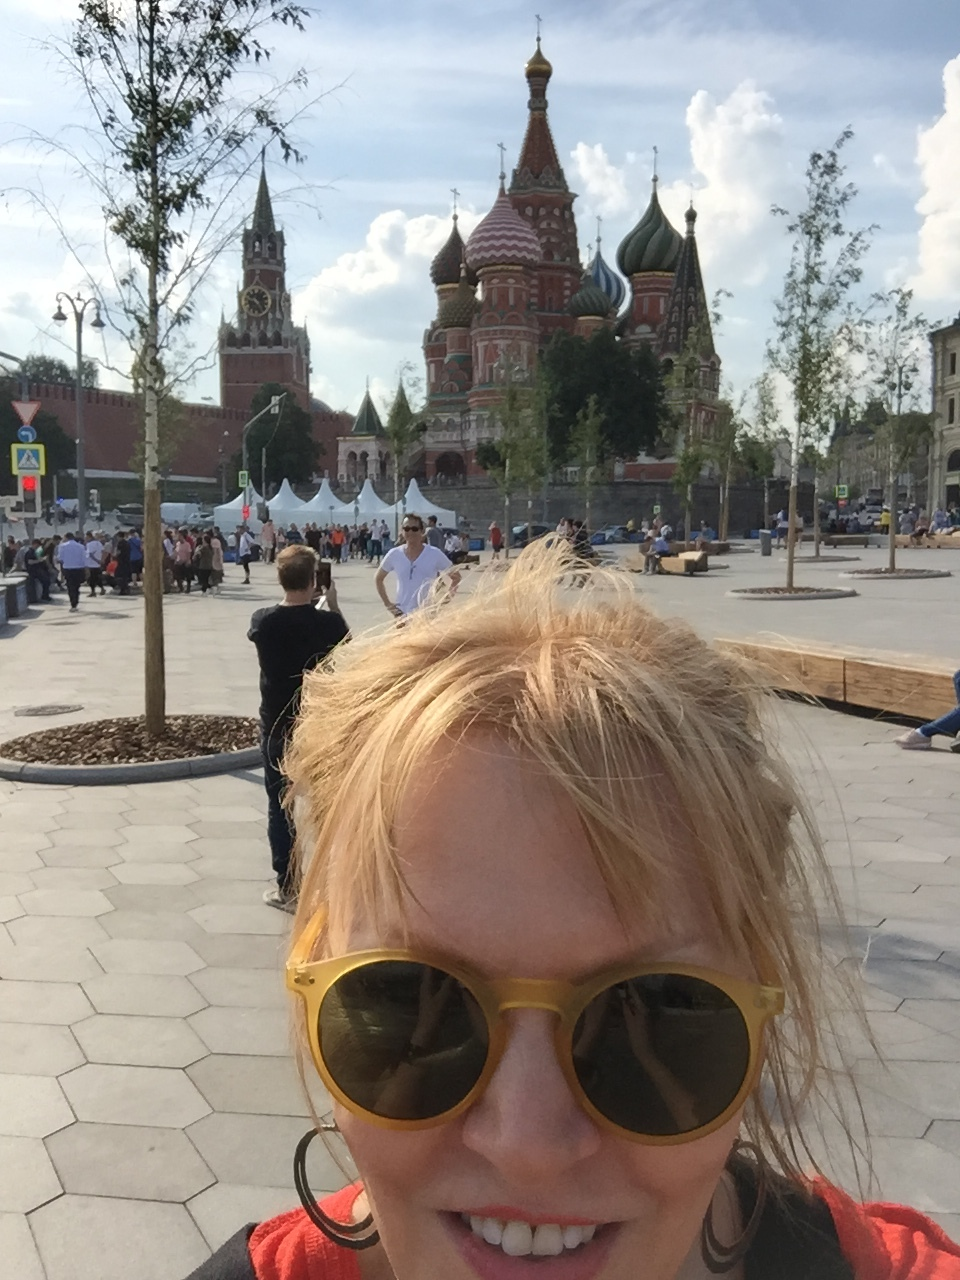 ML with Phil Cimino taking Jeremy Chatzky's picture in front of St. Basil's Cathedral in Red Square.